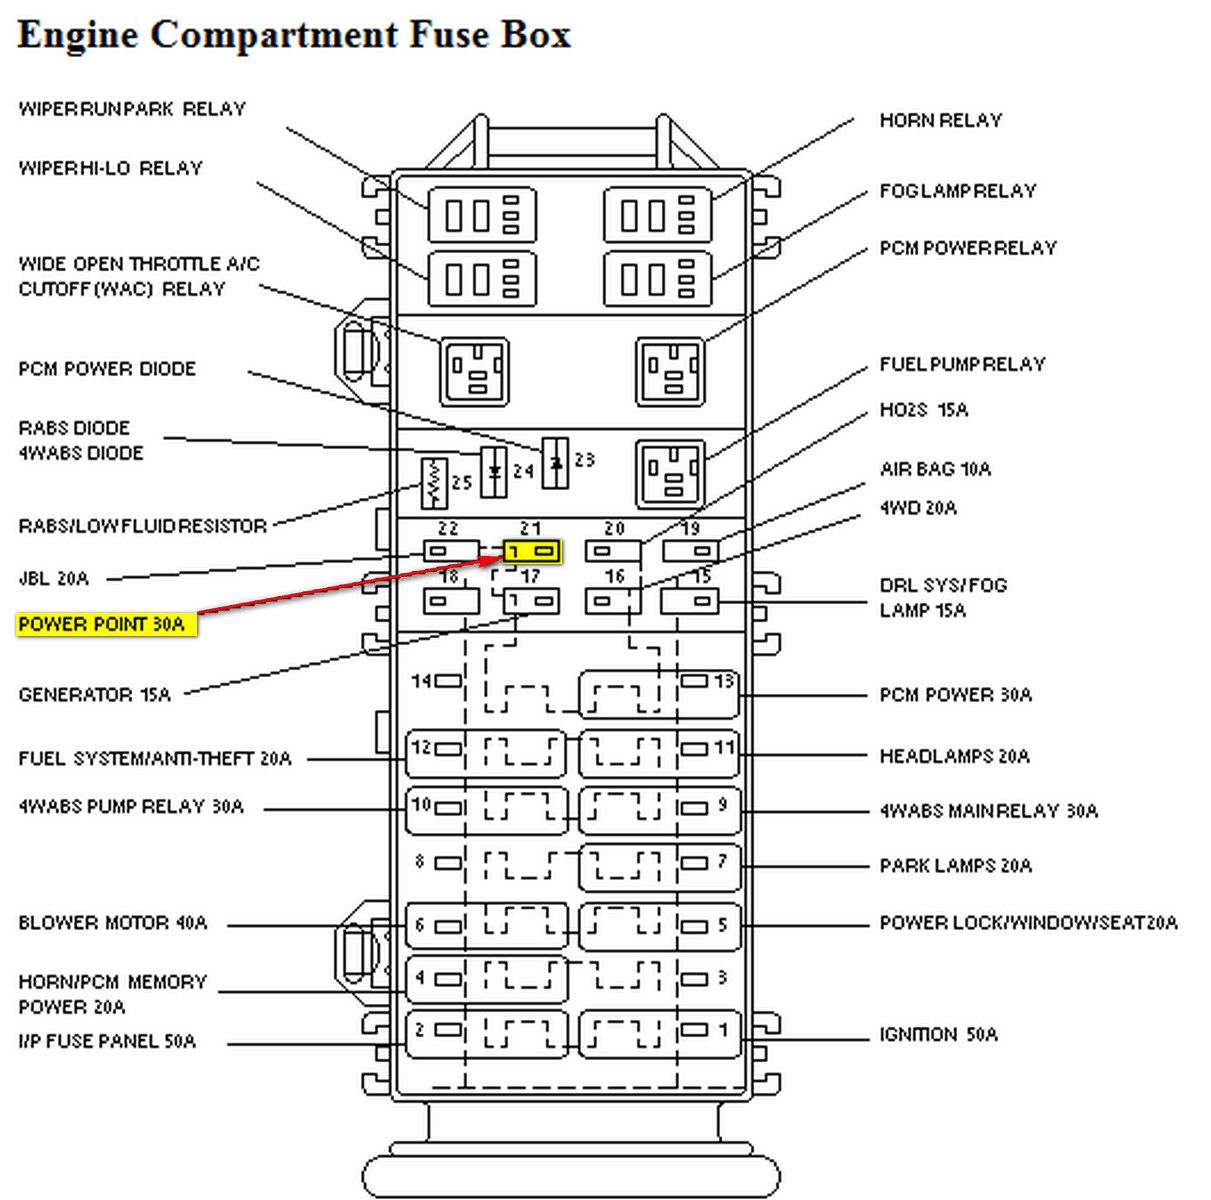 hight resolution of wrg 4838 2002 ford f 150 fx4 fuse panel diagram1997 ford ranger fuse box diagram